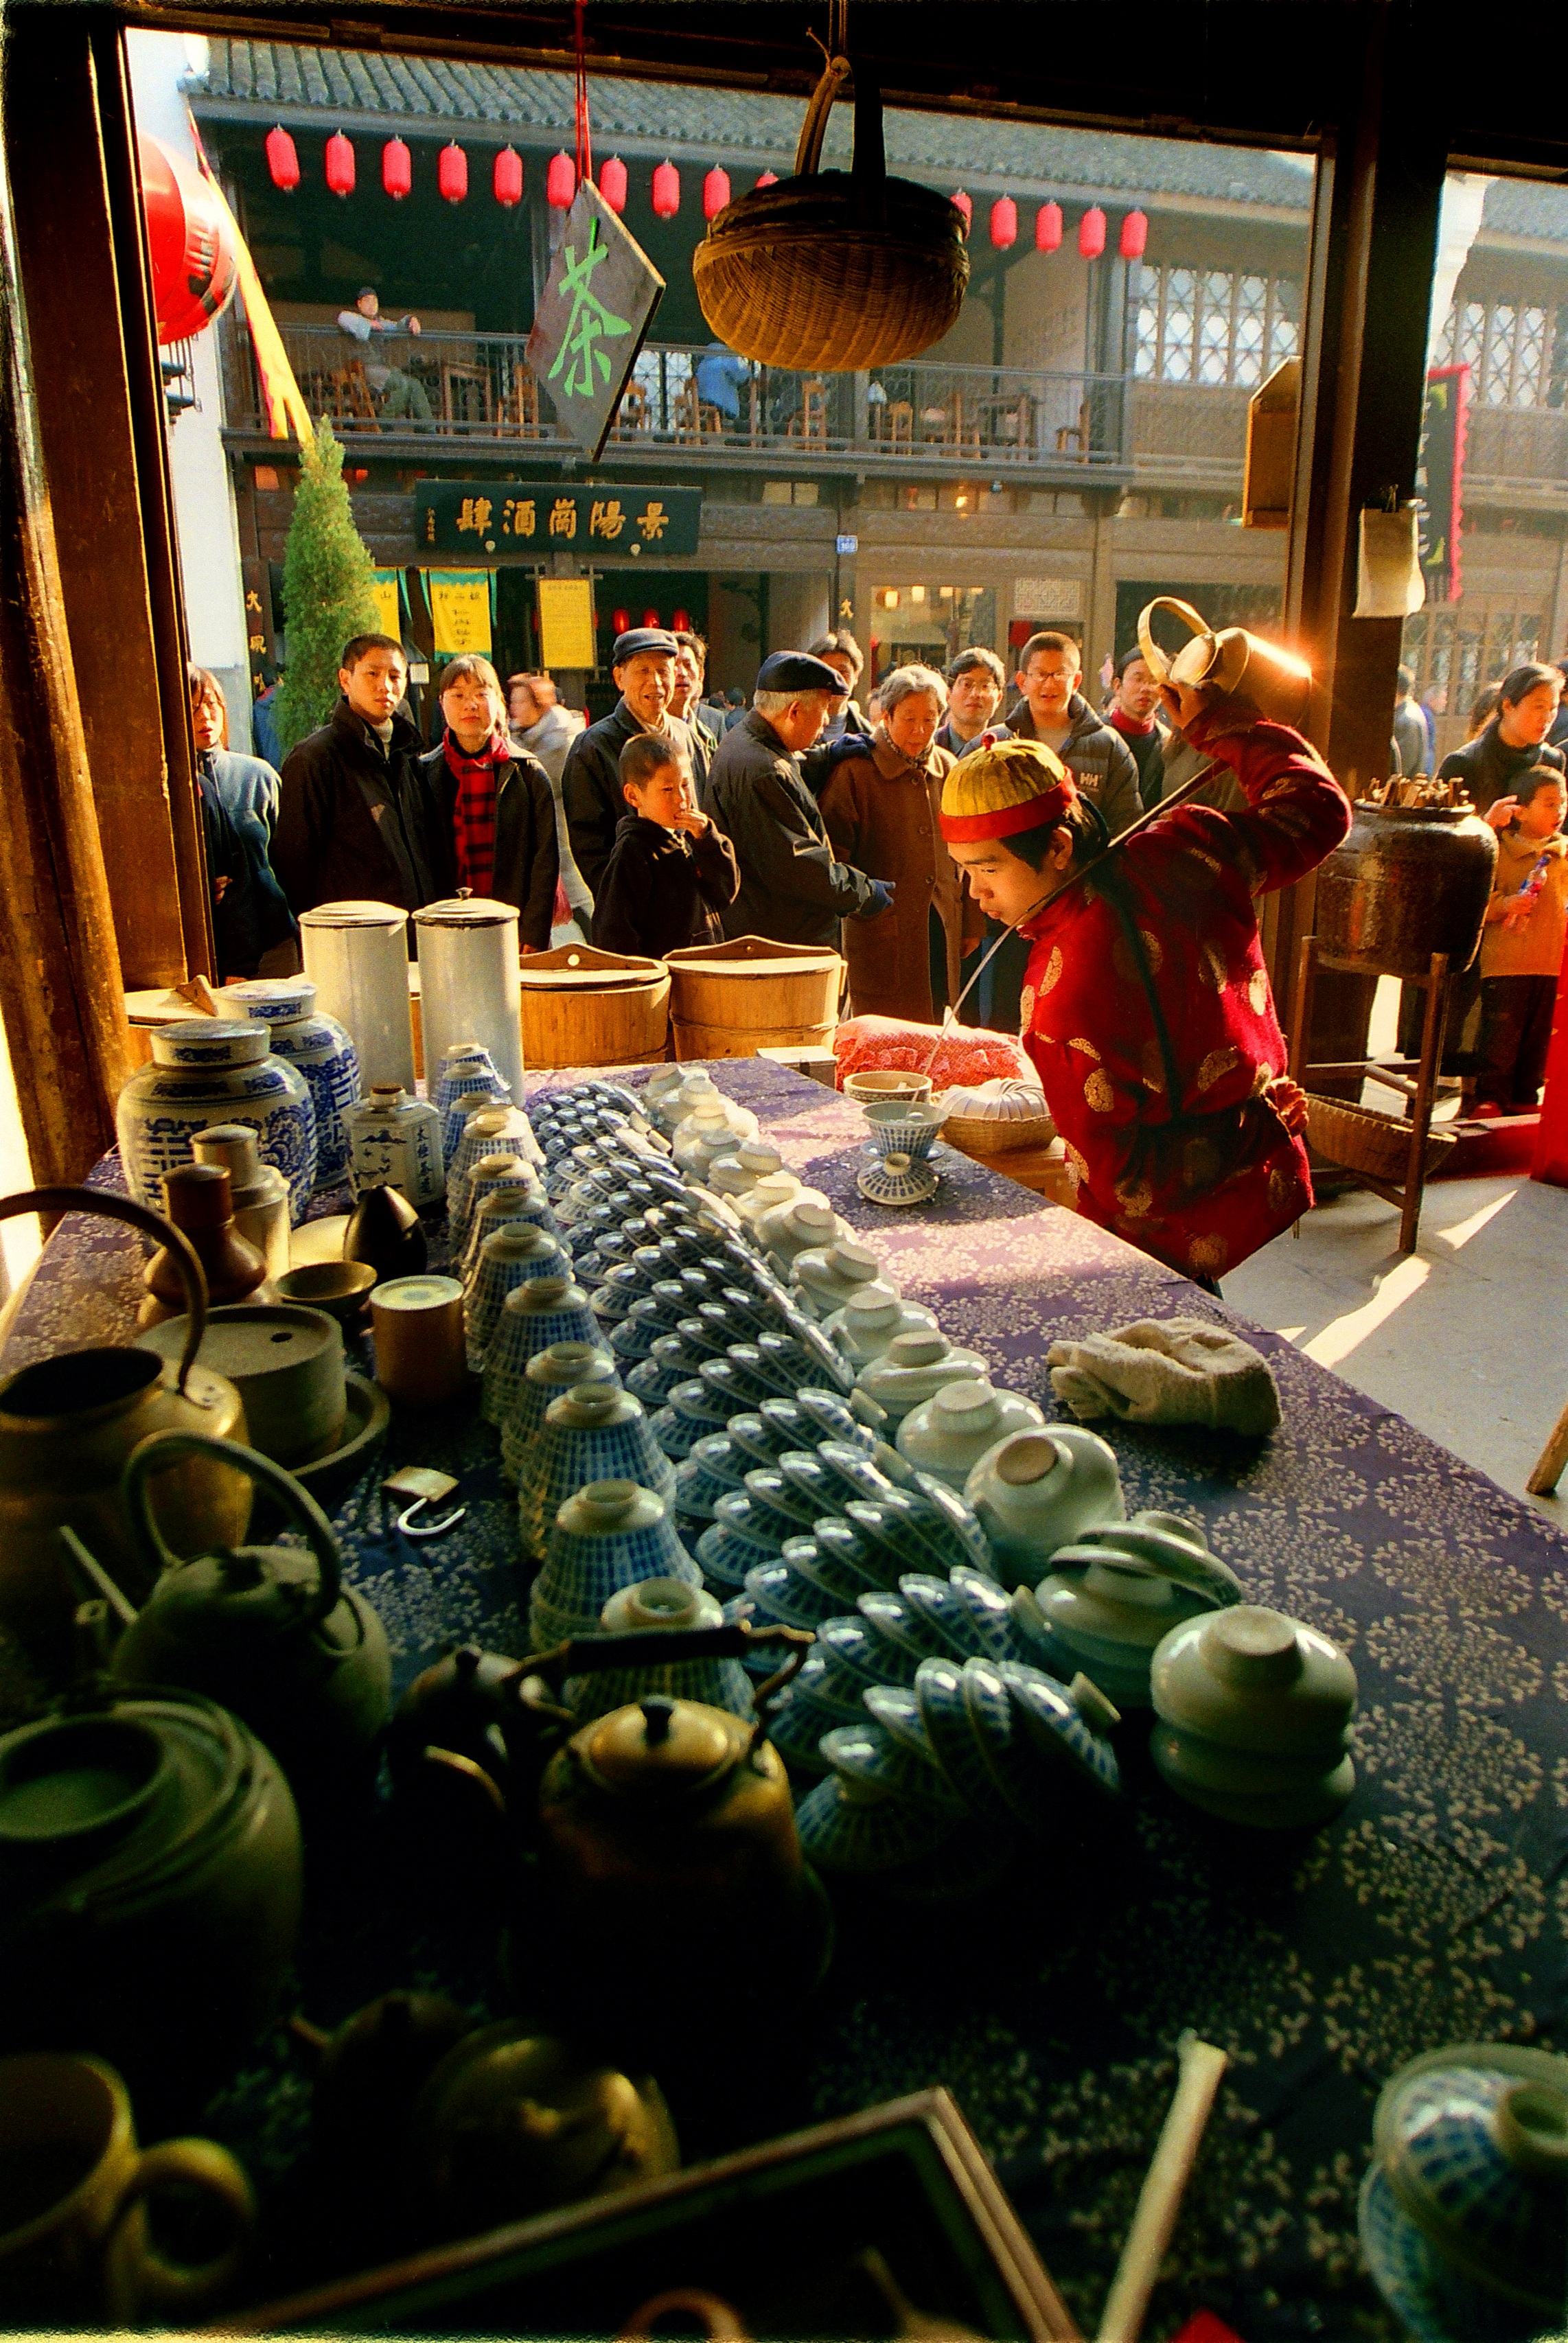 Hangzhou is famous for its tea culture